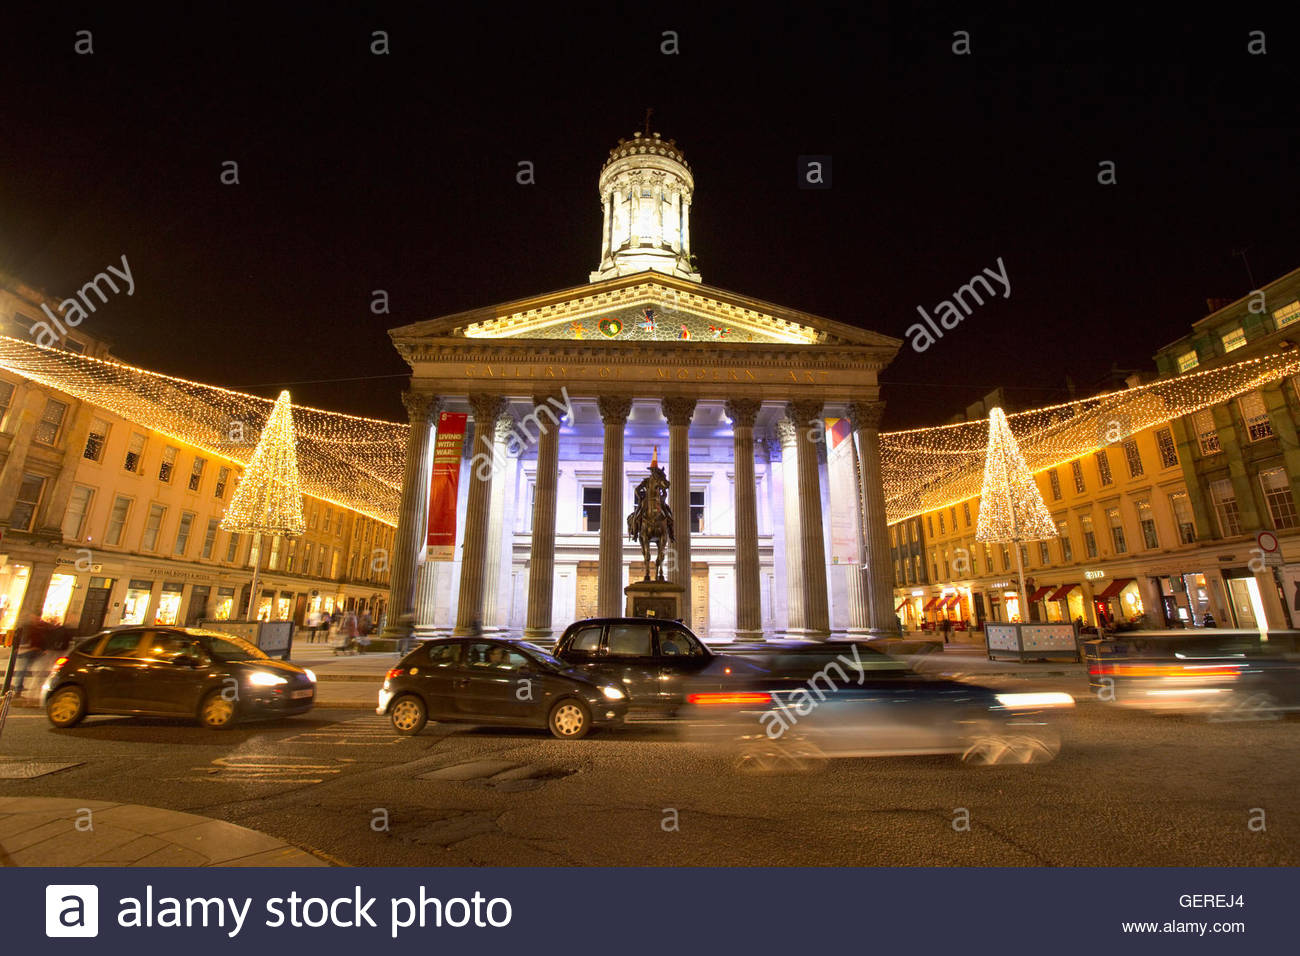 The canopy of lights surrounding the Gallery of Modern Art in Royal Exchange Square during the Christmas celebrations in the cit & The canopy of lights surrounding the Gallery of Modern Art in Royal ...